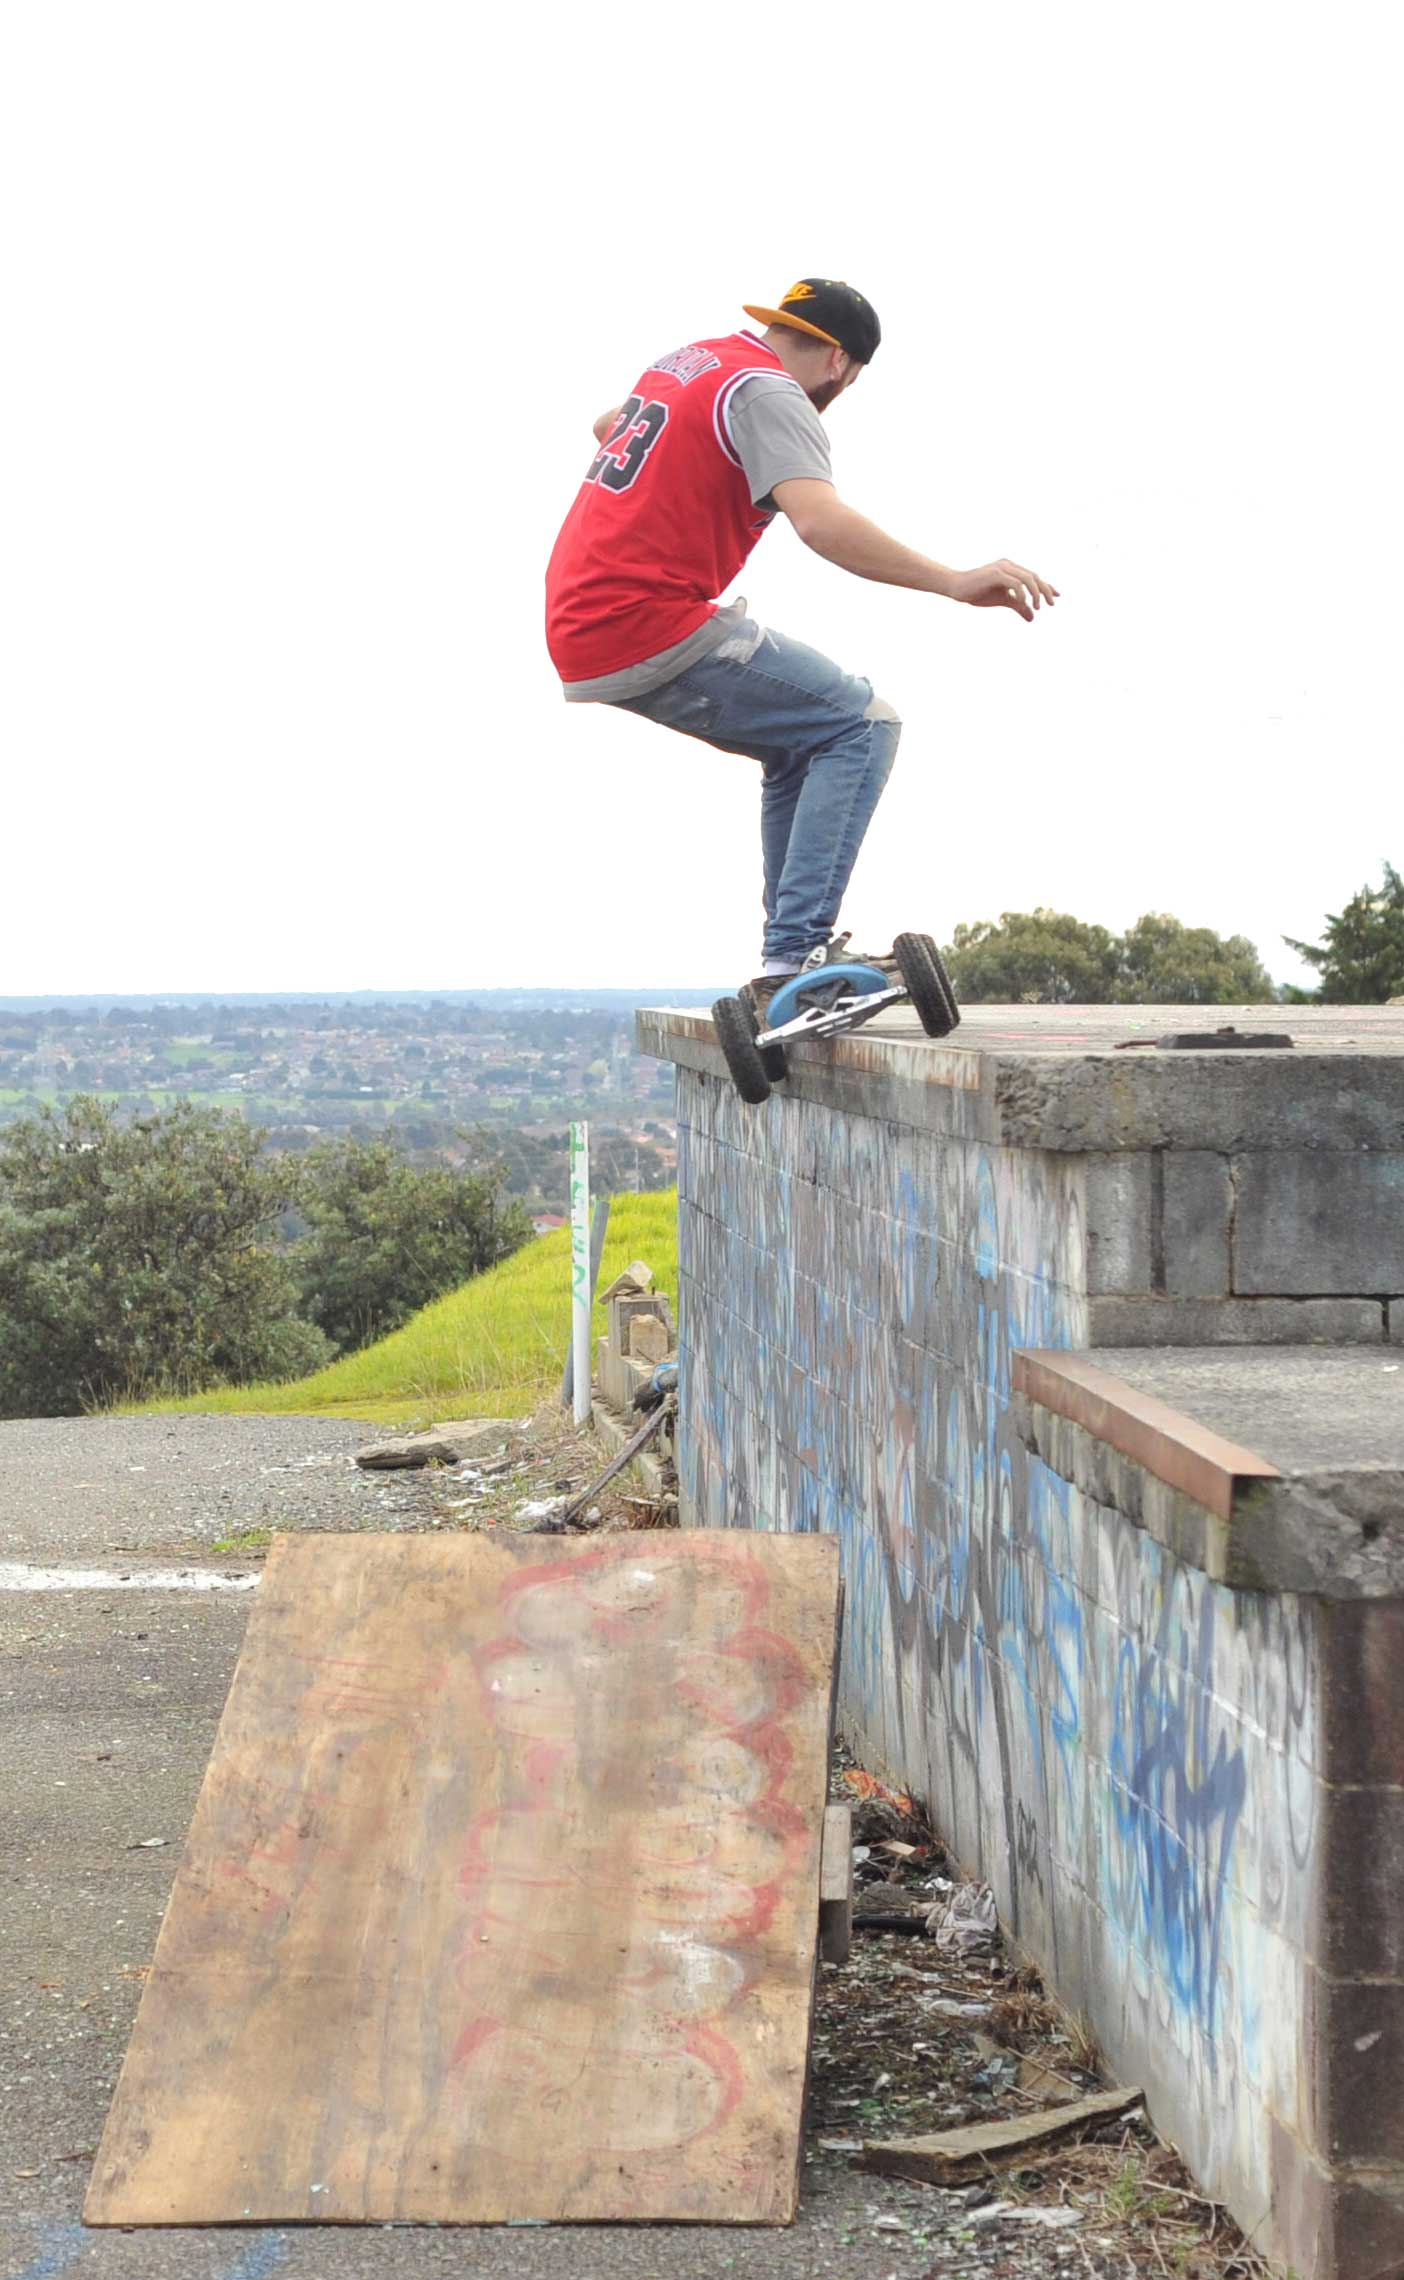 Australian Mountainboarders, mountainboarding event entertainment, event entertainment melbourne